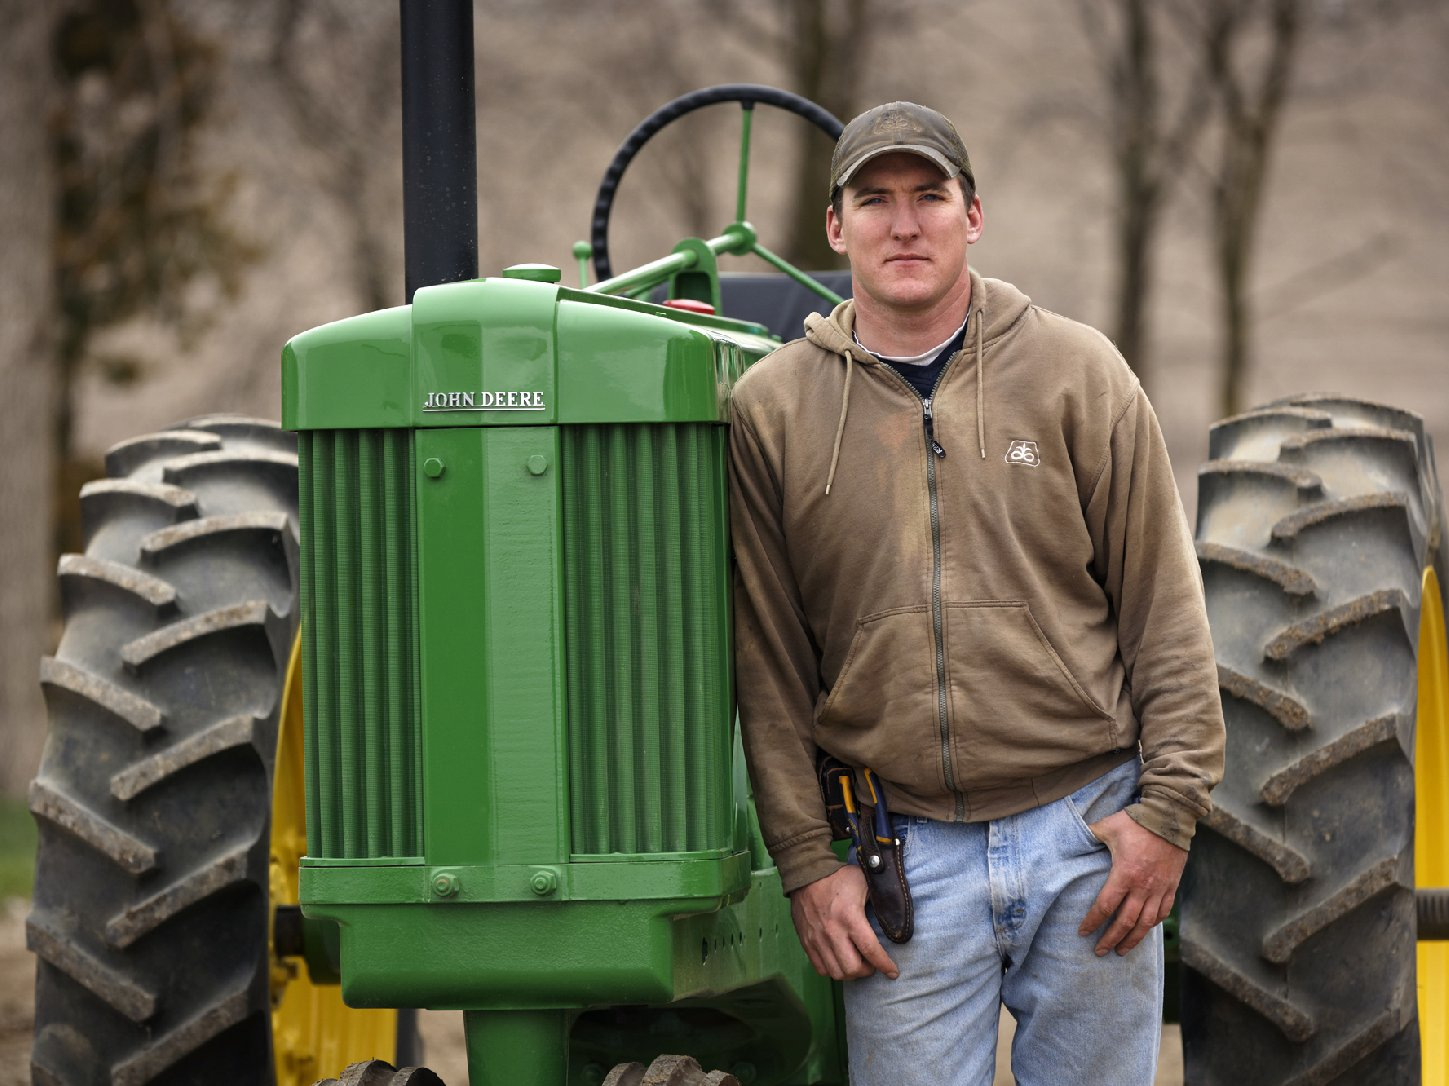 David Loberg's family farm in Carroll, Neb., is featured in the film Farmland. Photo: Don Holtz/Ketchum